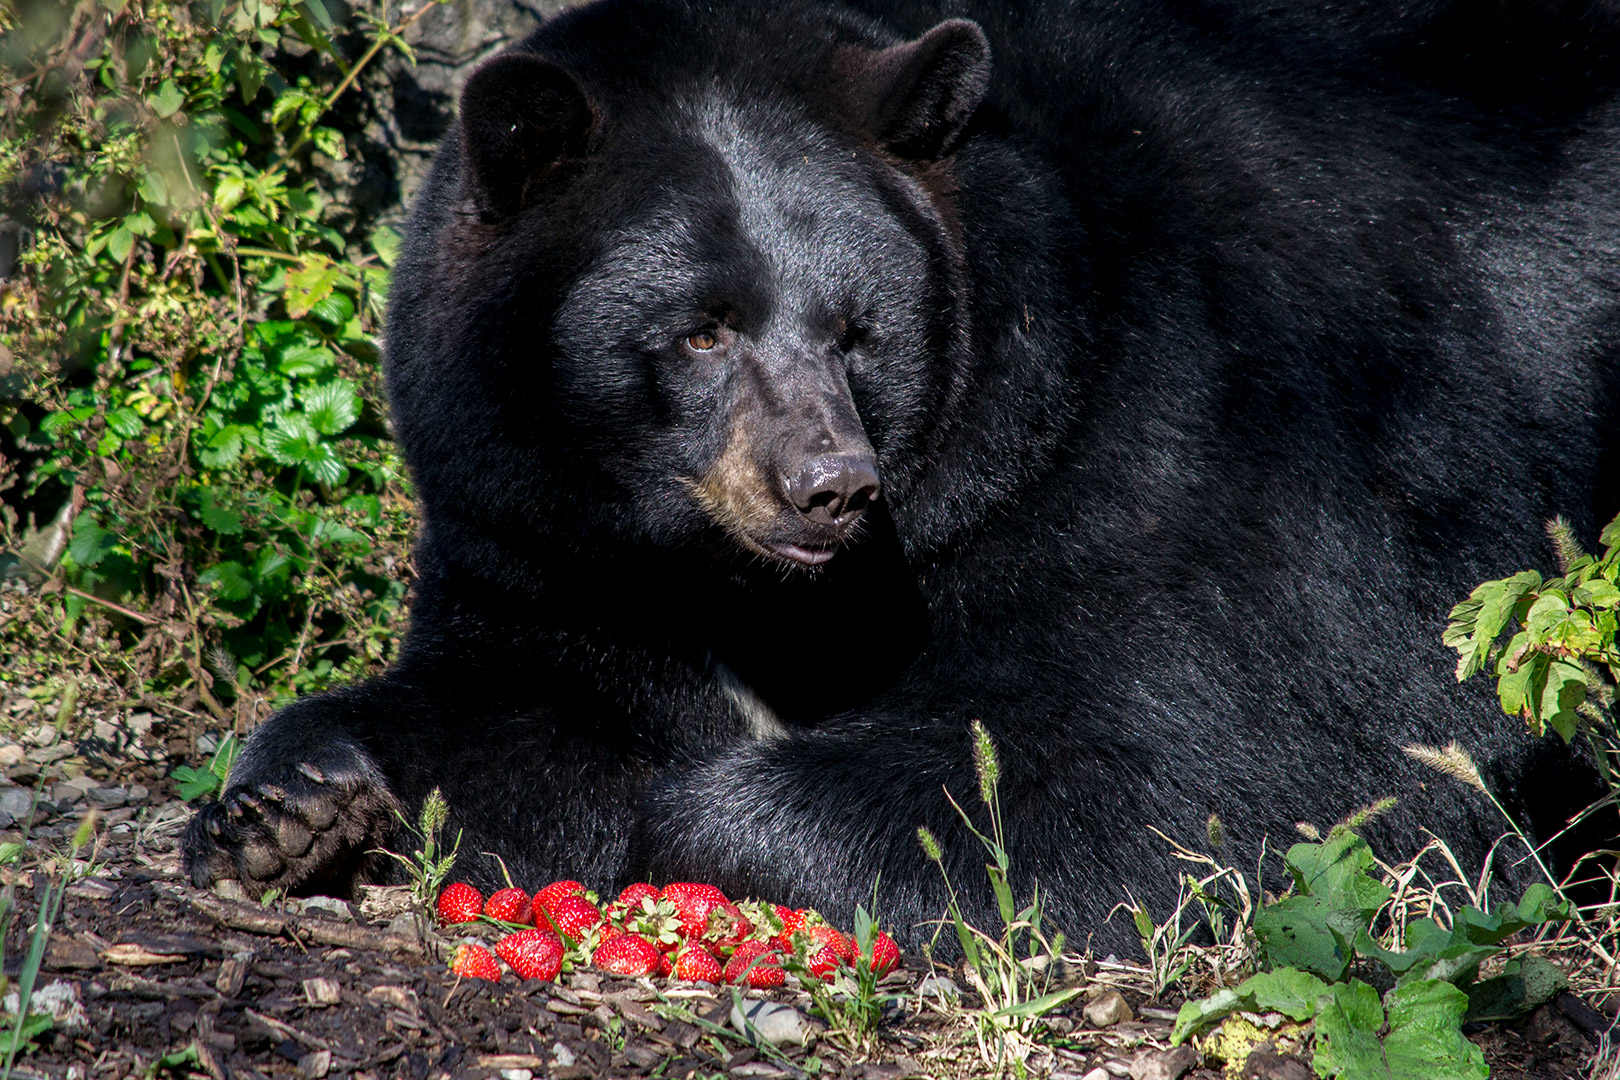 black bear eating strawberries